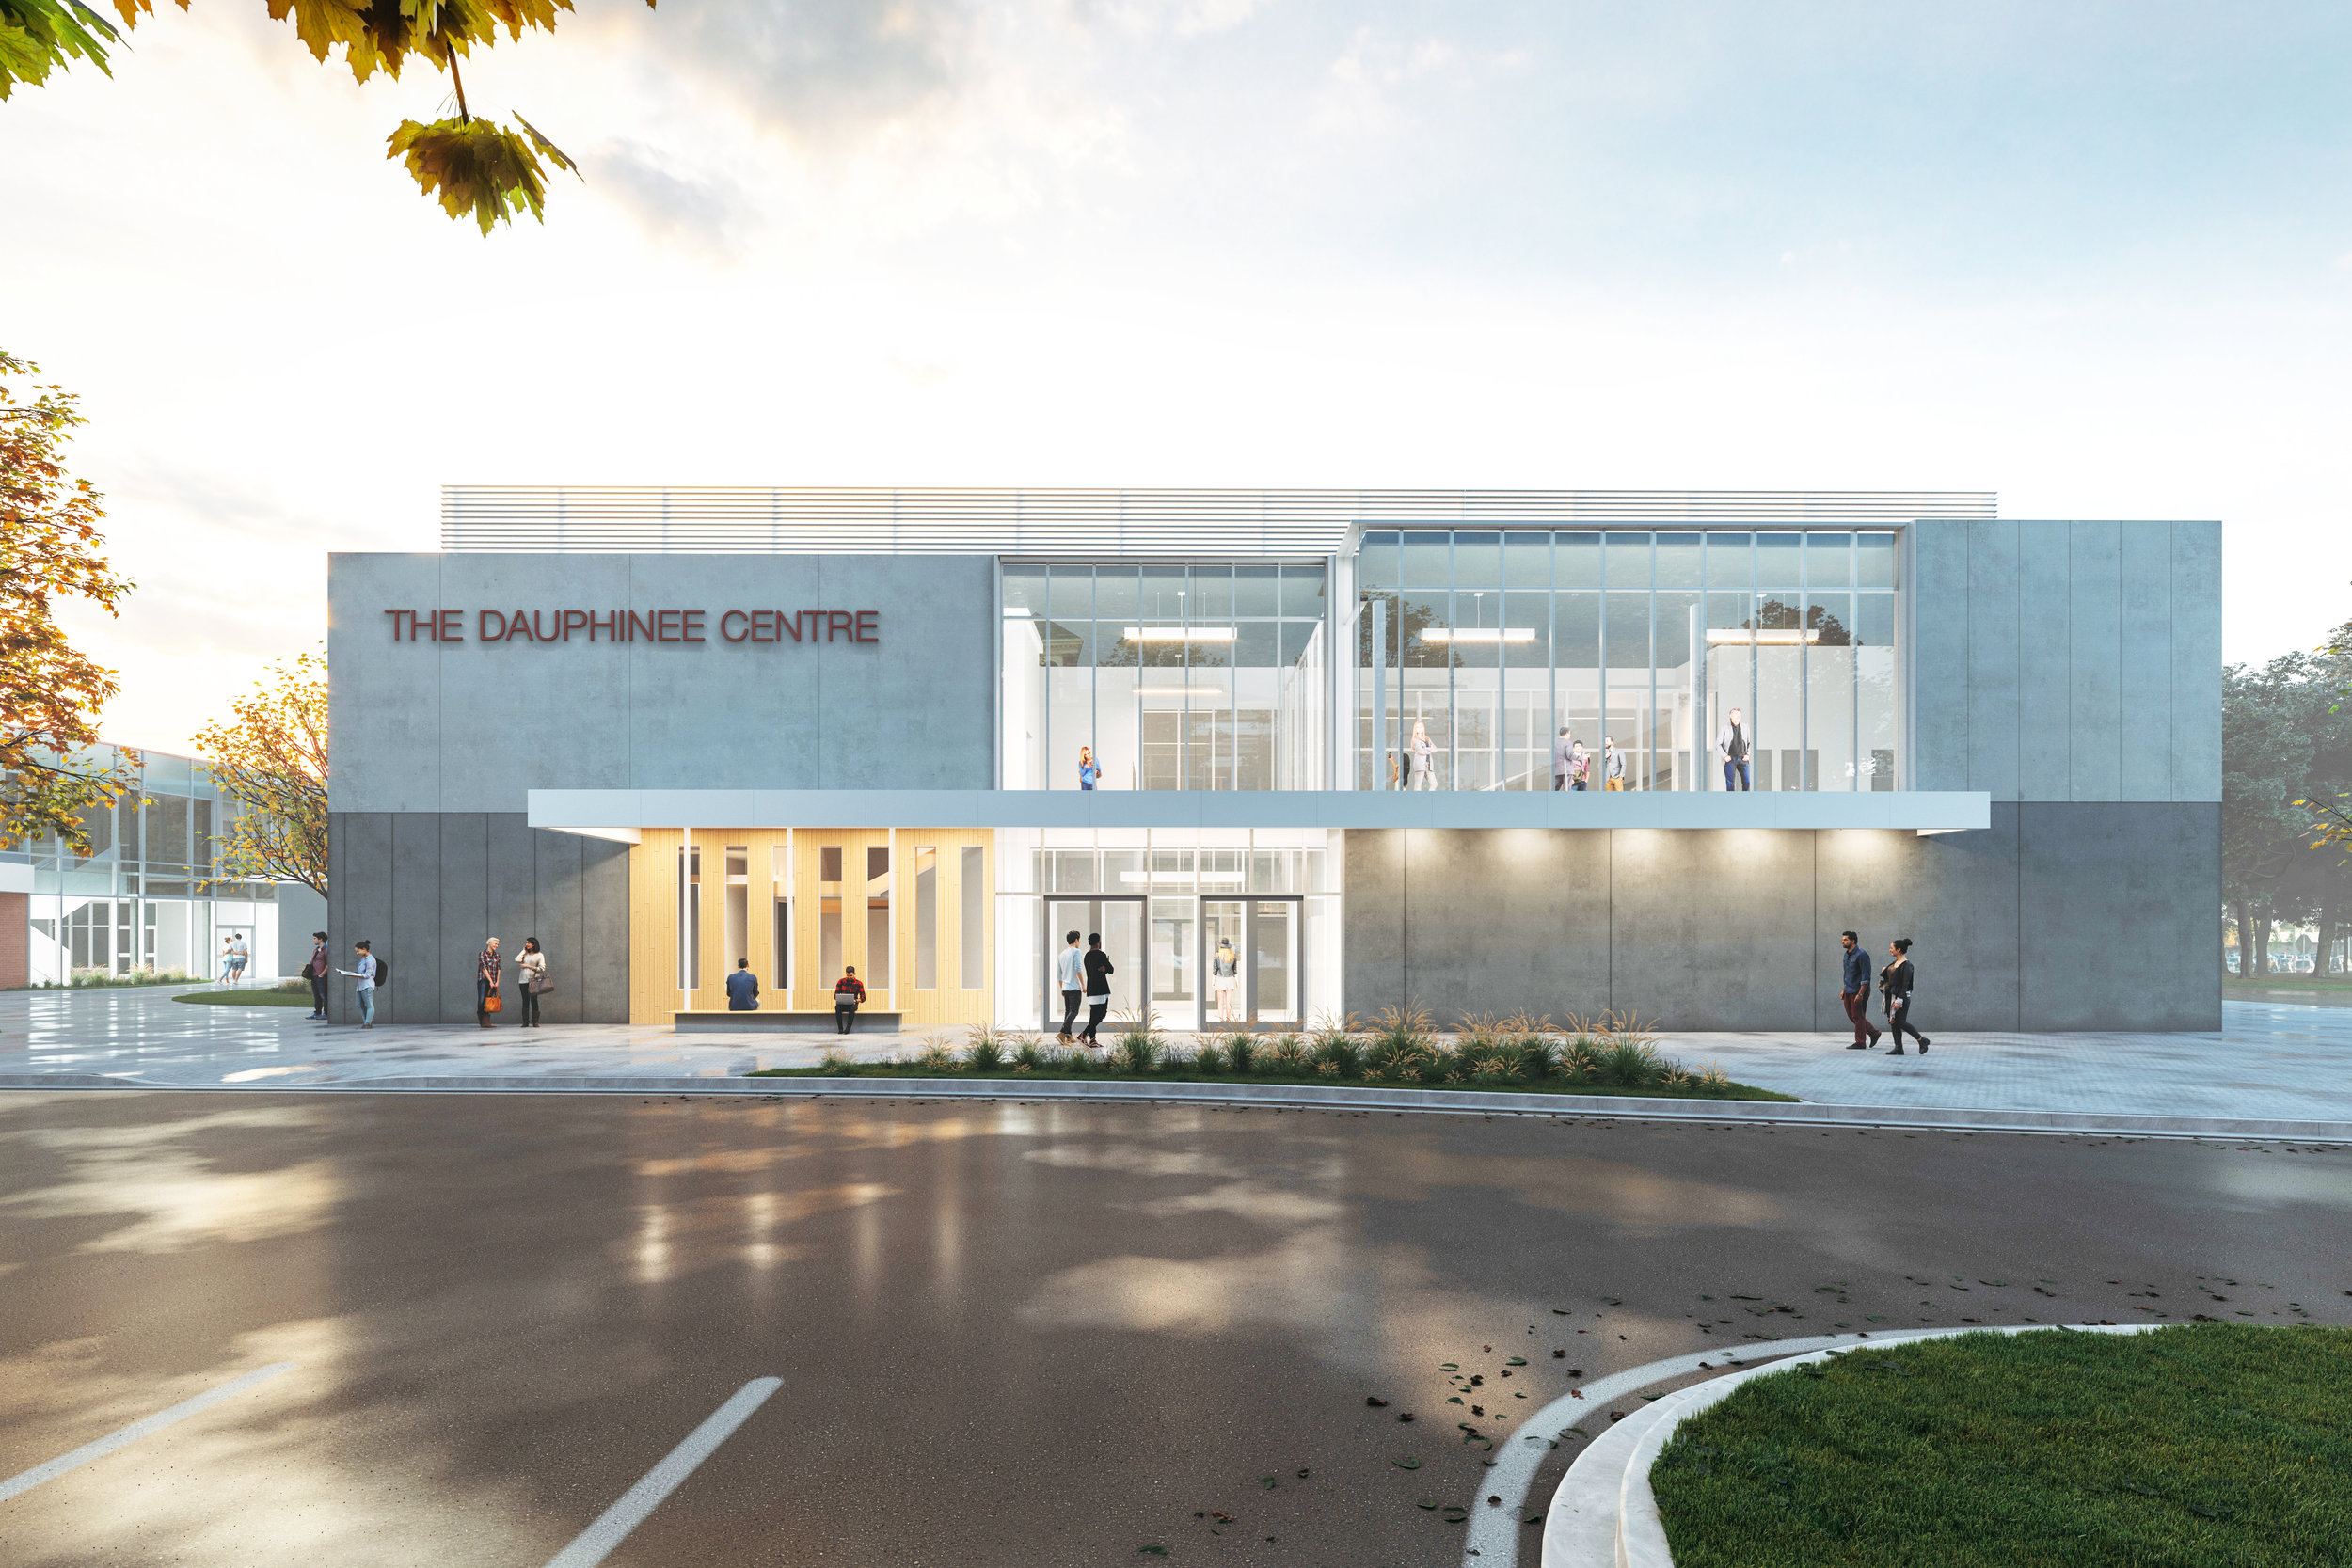 A rendering of The Dauphinee Centre.